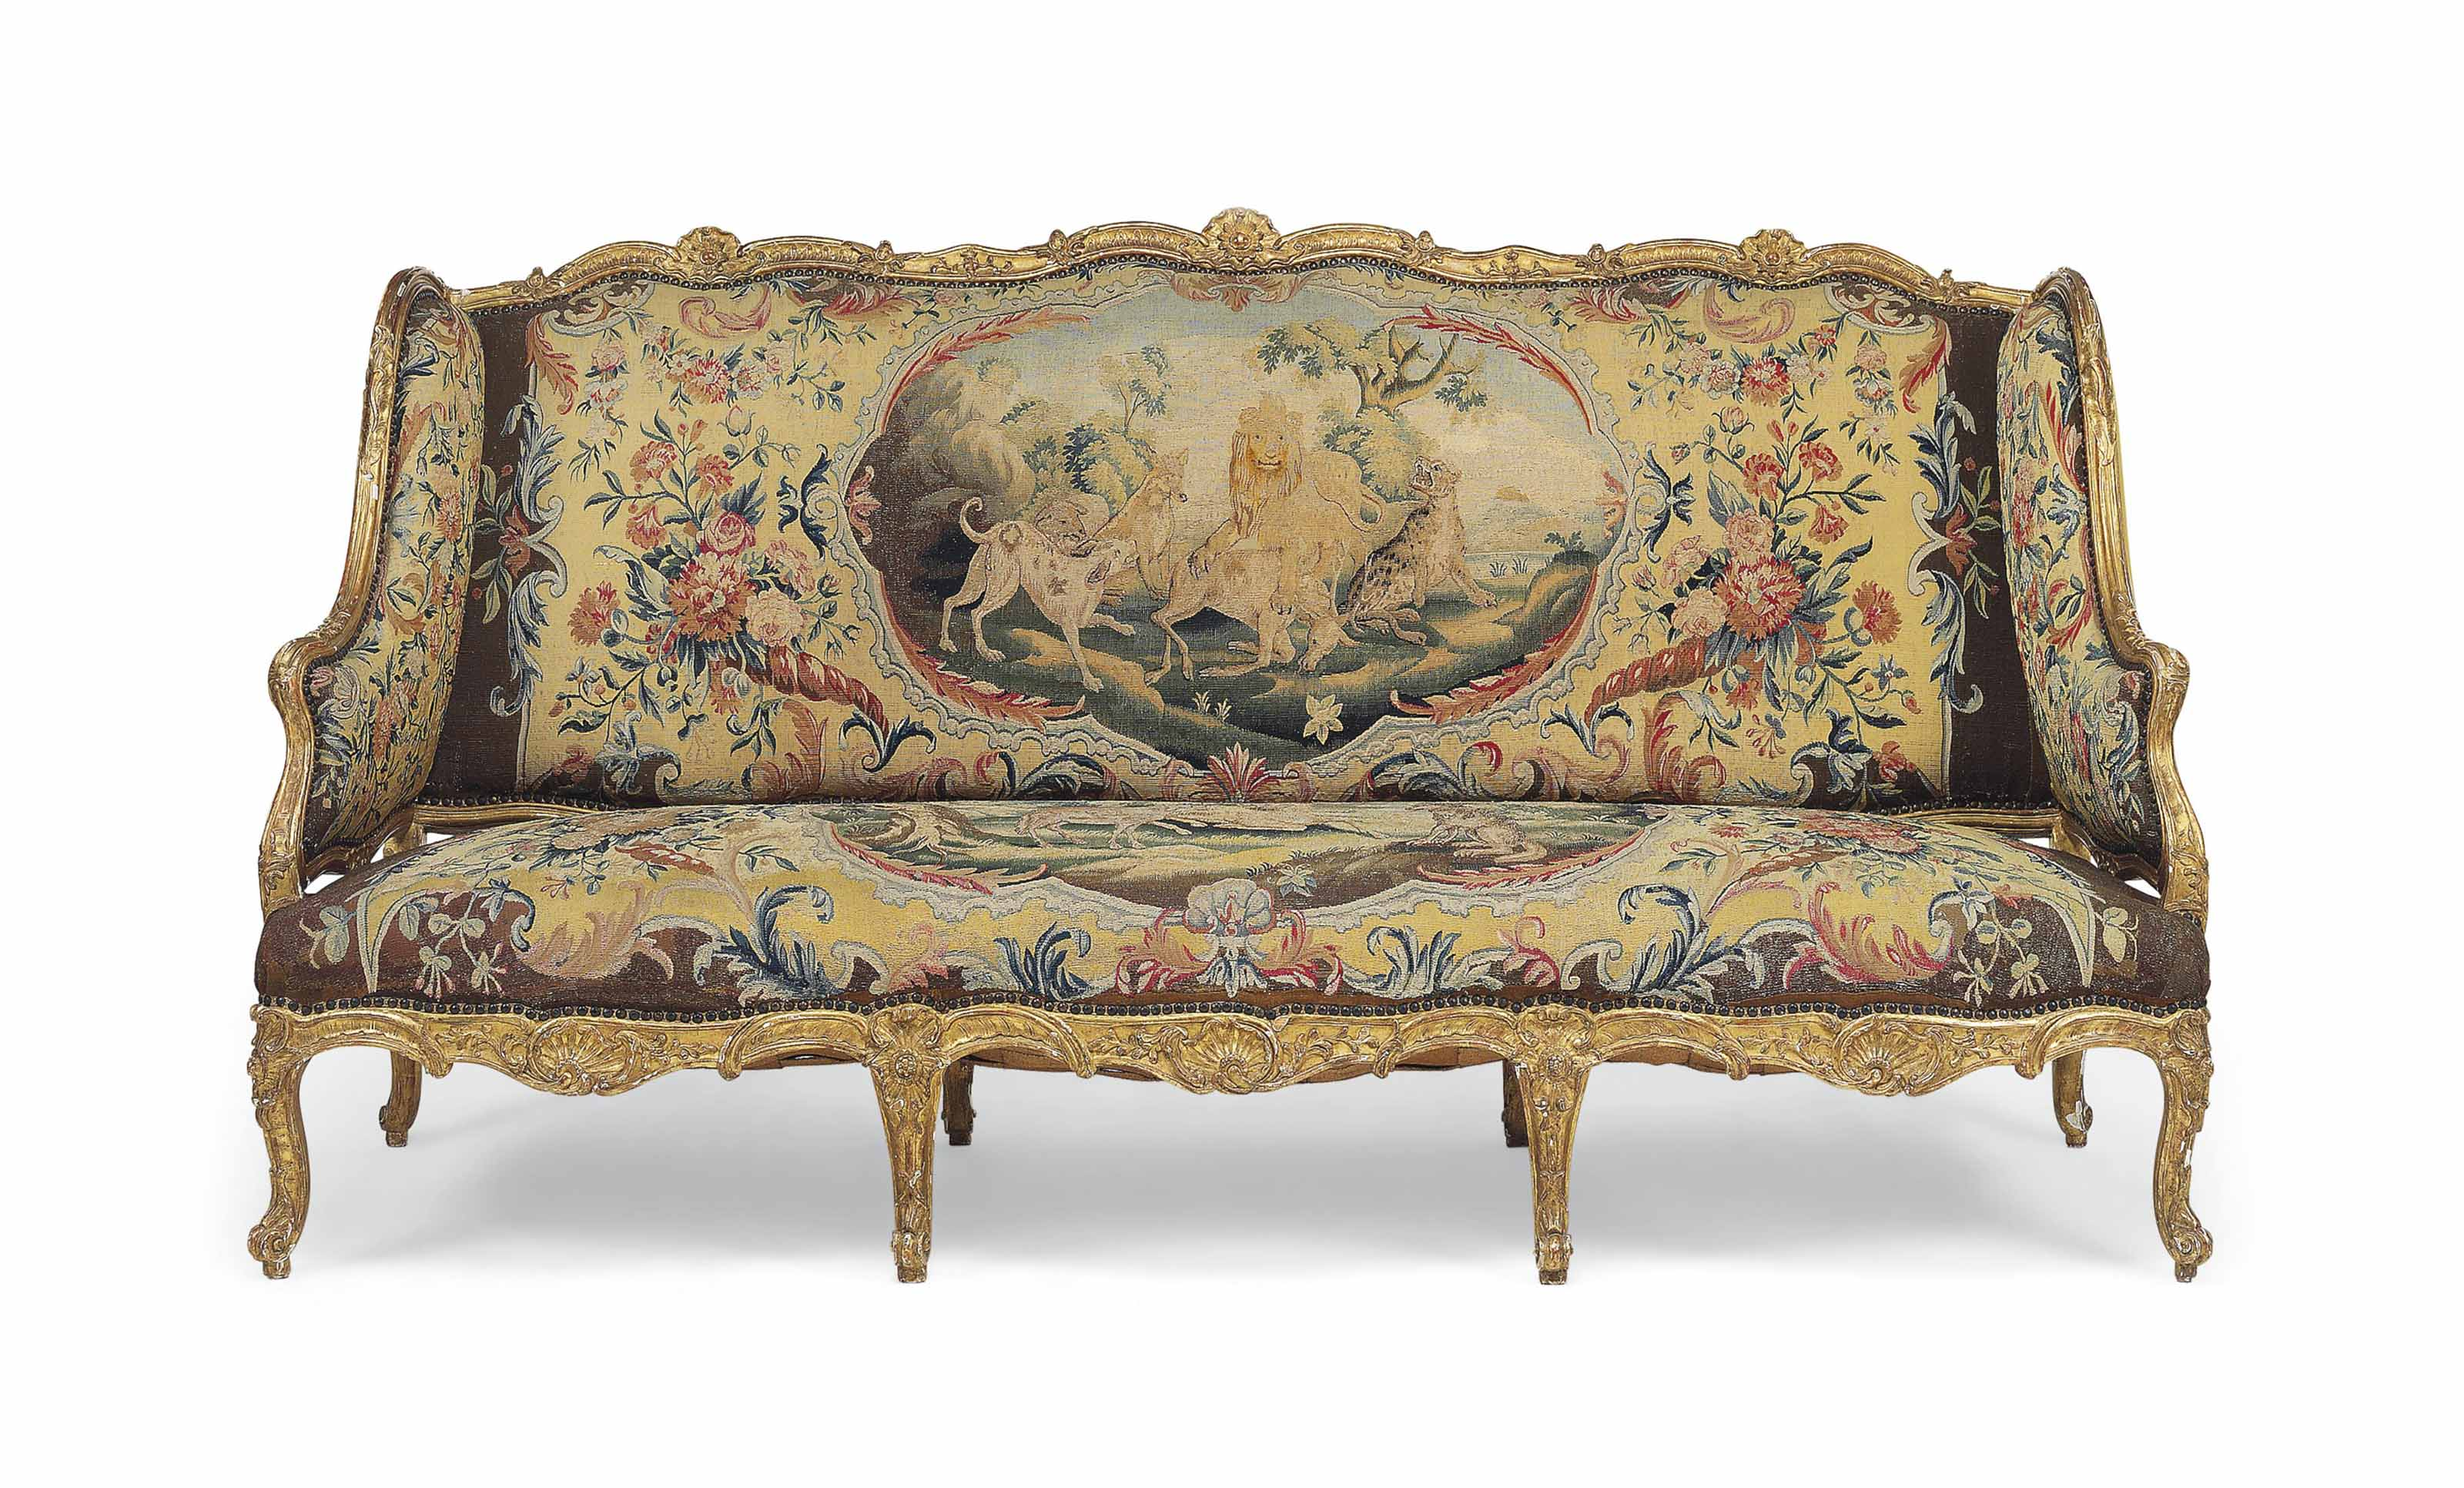 AN EARLY LOUIS XV GILTWOOD AND BEAUVAIS TAPESTRY CANAPE A OREILLES